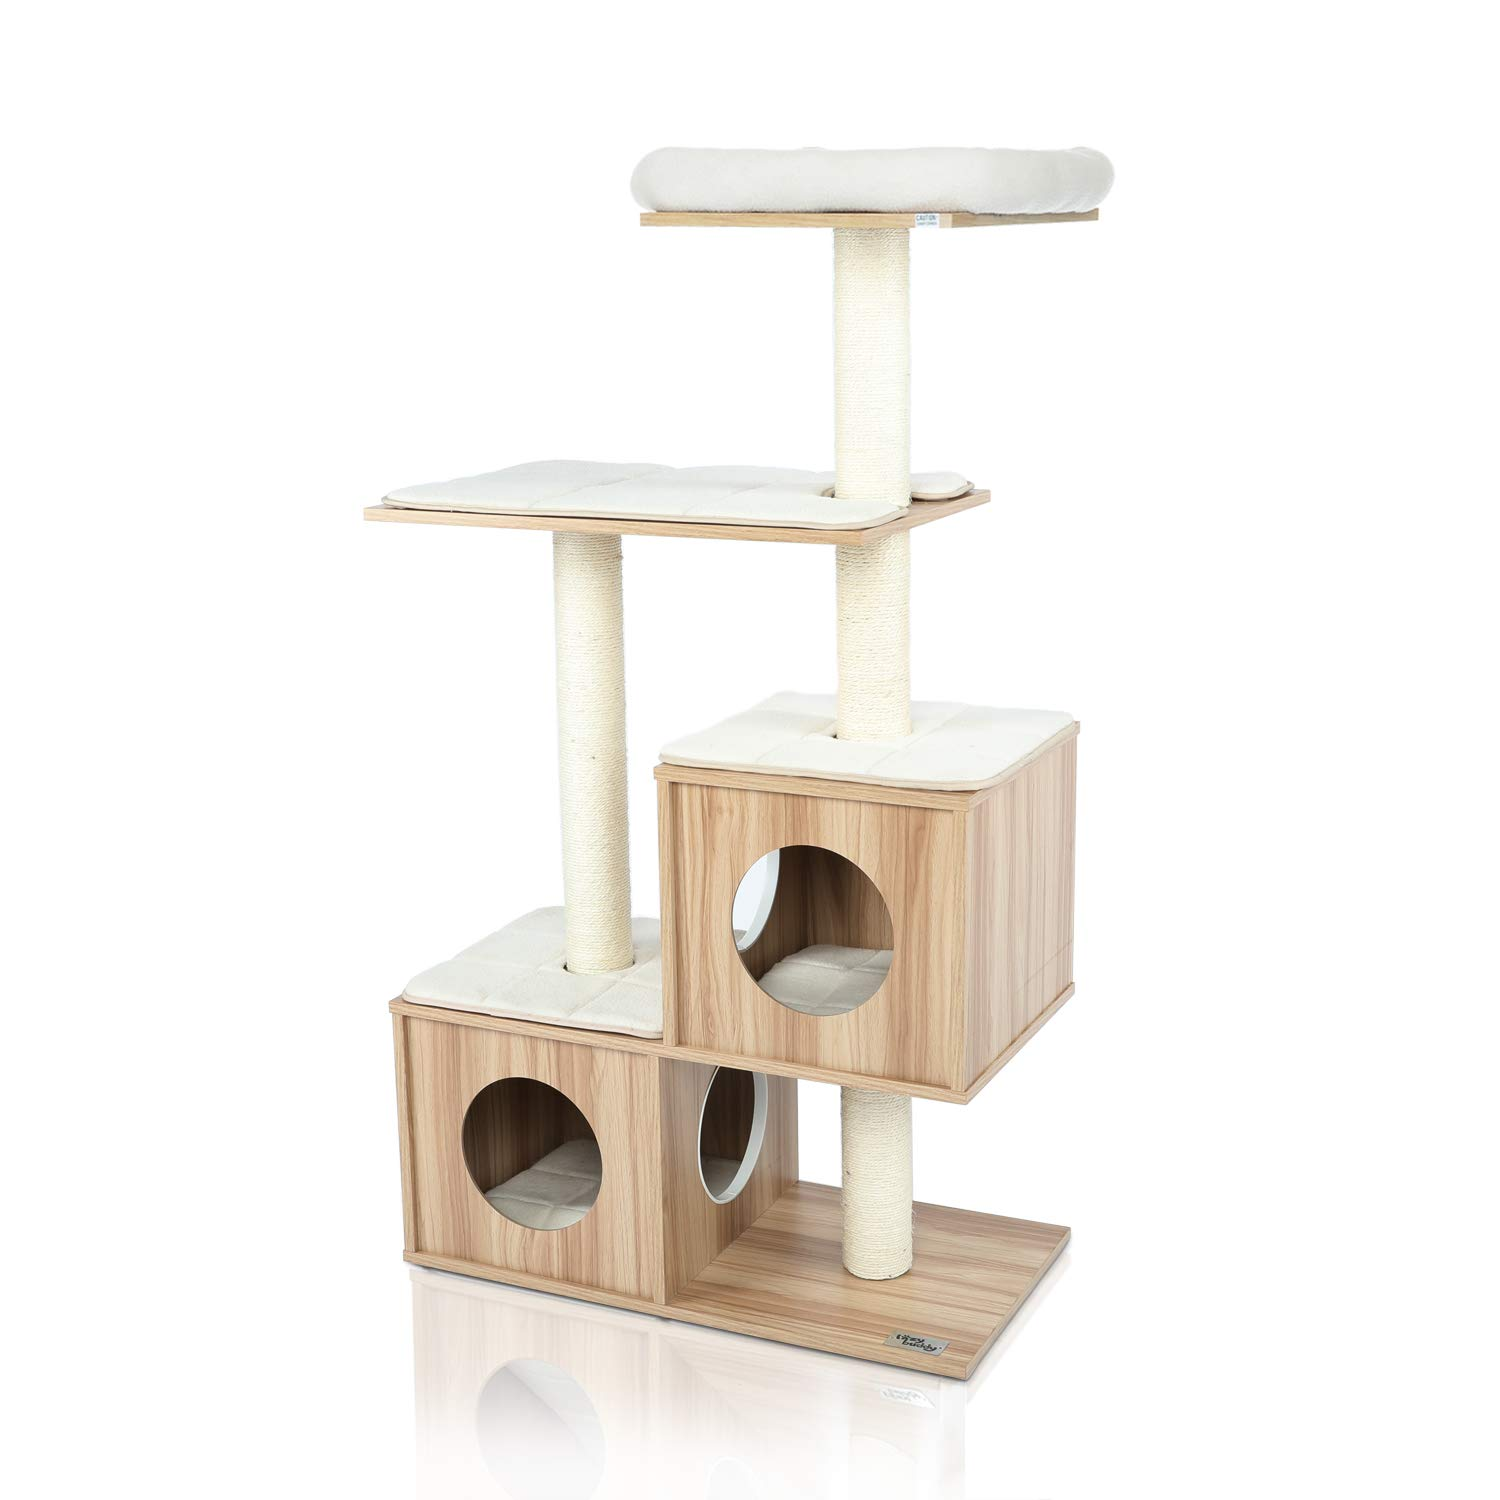 "LAZY BUDDY 54"" Wooden Cat Tree, Modern Cat Tower, 4 Levels for Cat's Activity, Cat Furniture with Removable and Washable Mats for Kittens, Large Cats and Pets (Small)"